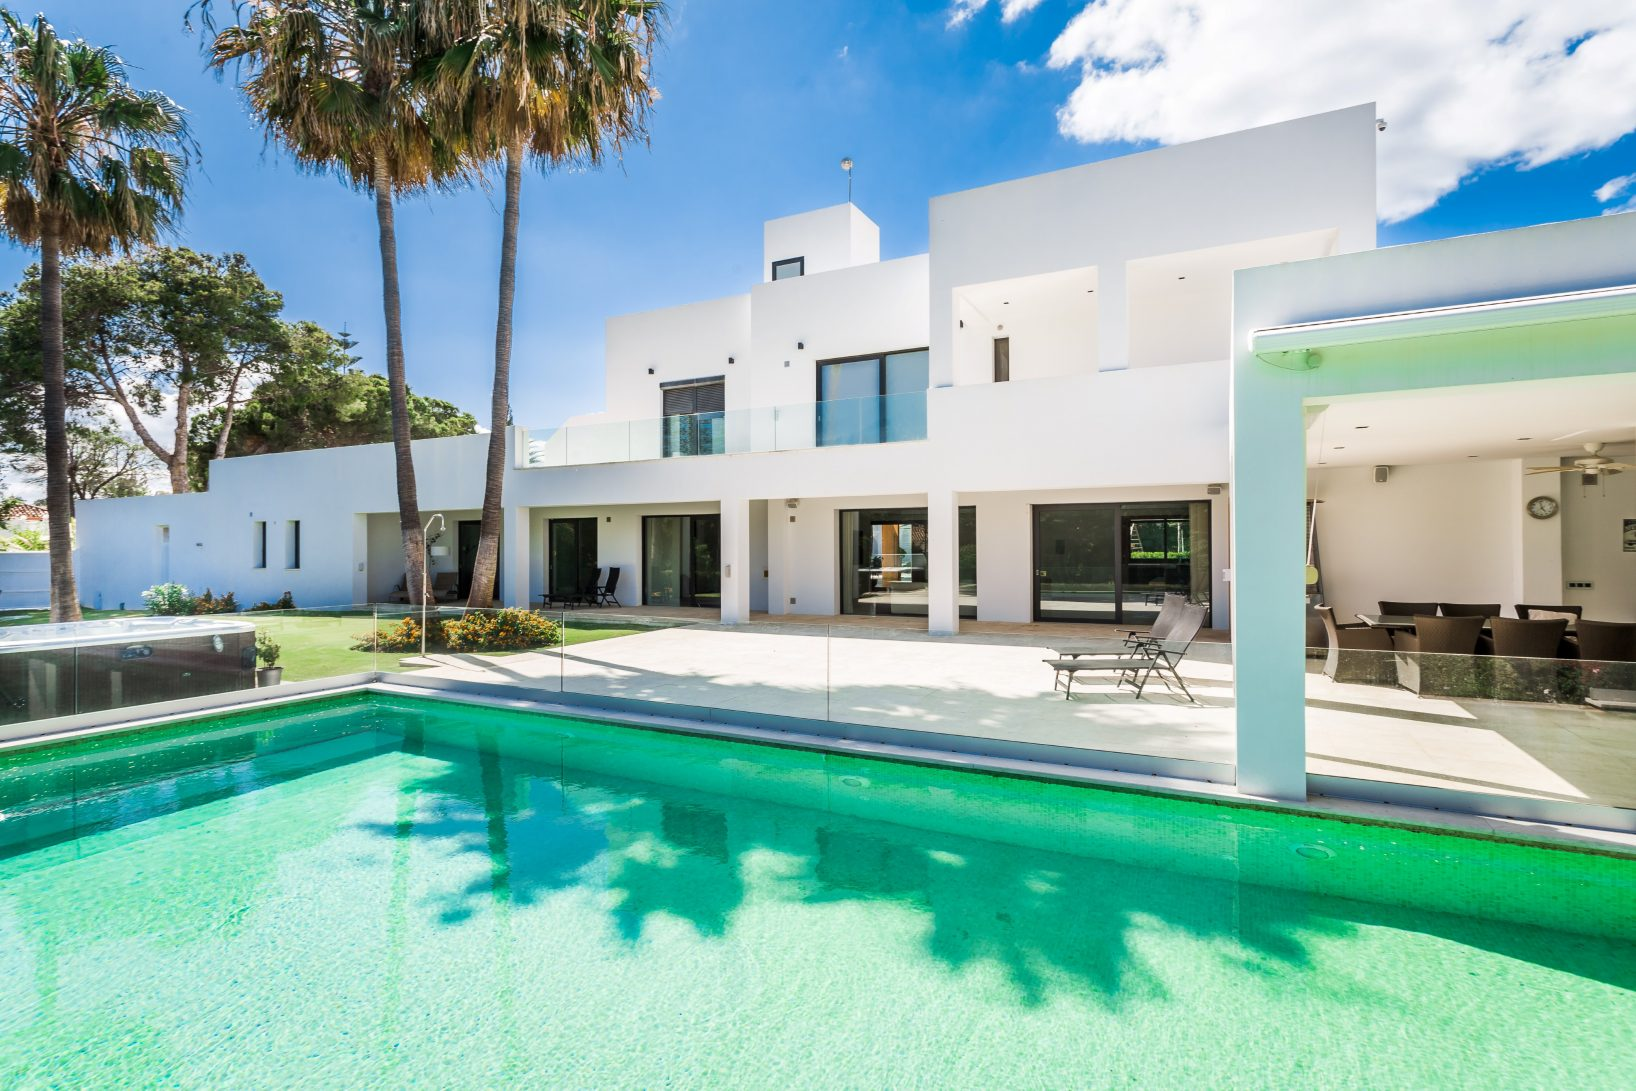 Property in Spain Buyer's Guide